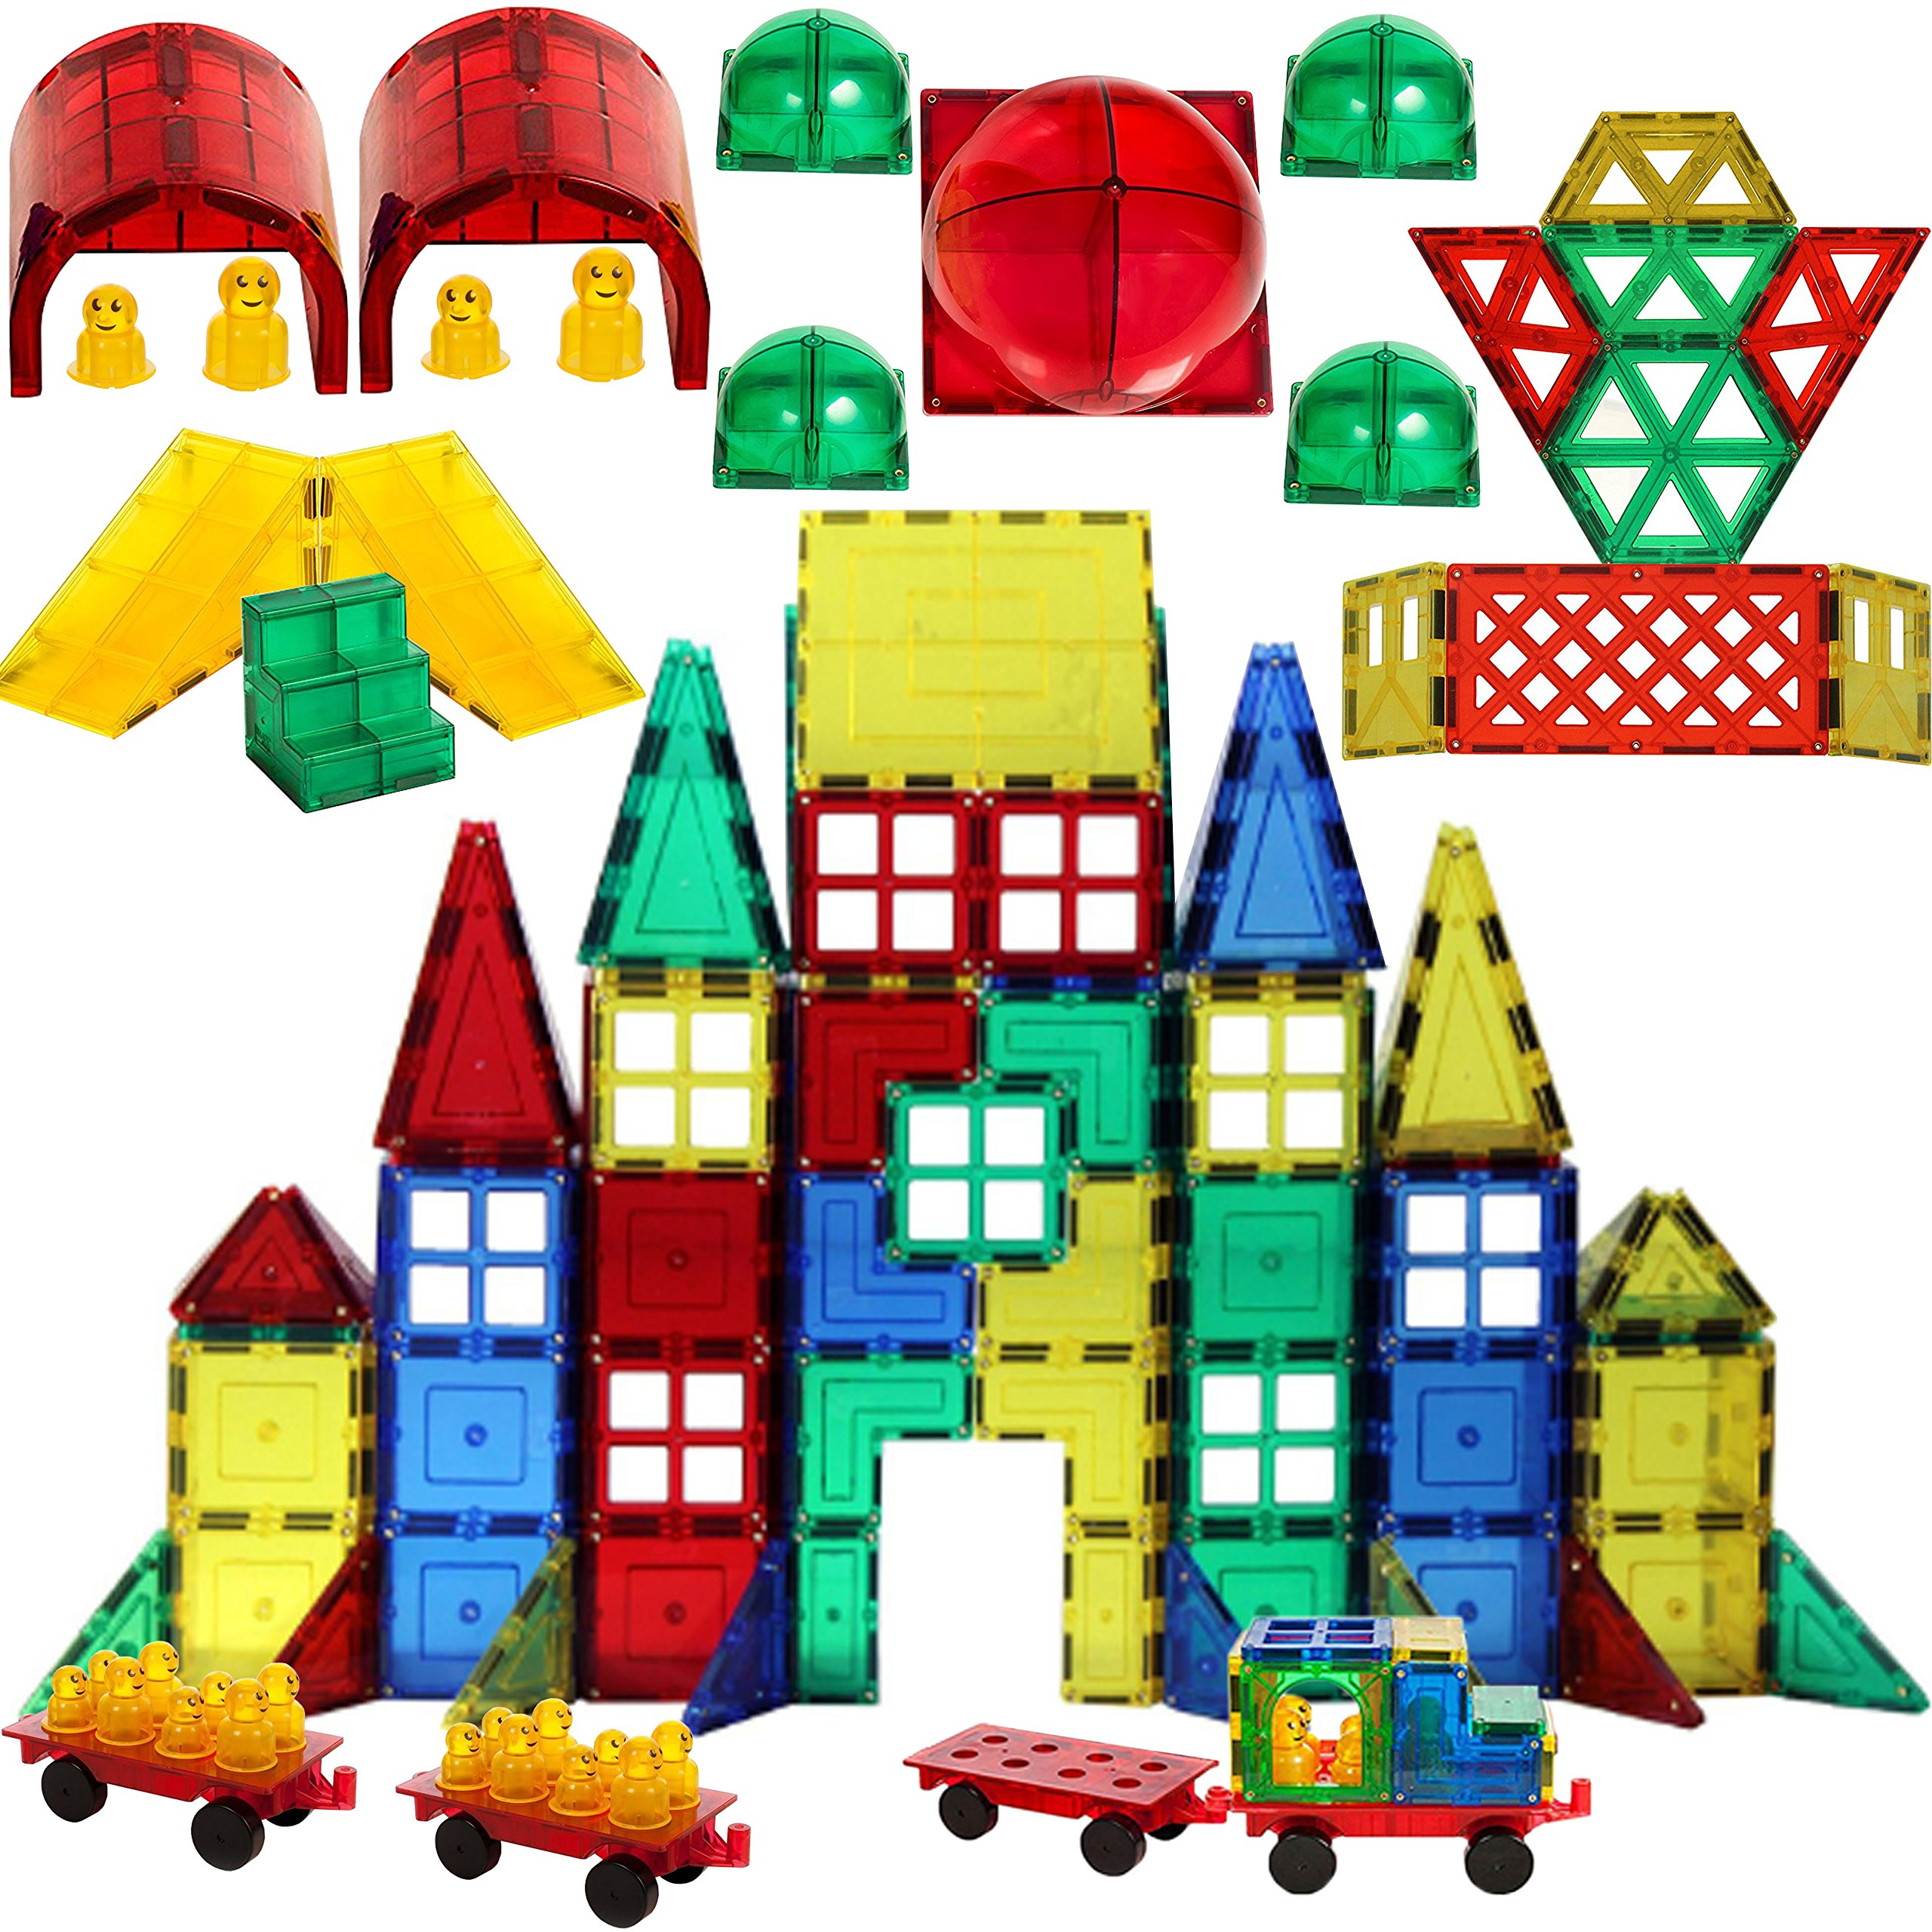 Award Winning Magnetic Stick N Stack 300 pcs MASTER BUILDER set. includes 23 different shapes Door, Windows, Frames, Gates, Arches, Figures,Wheels, And much more